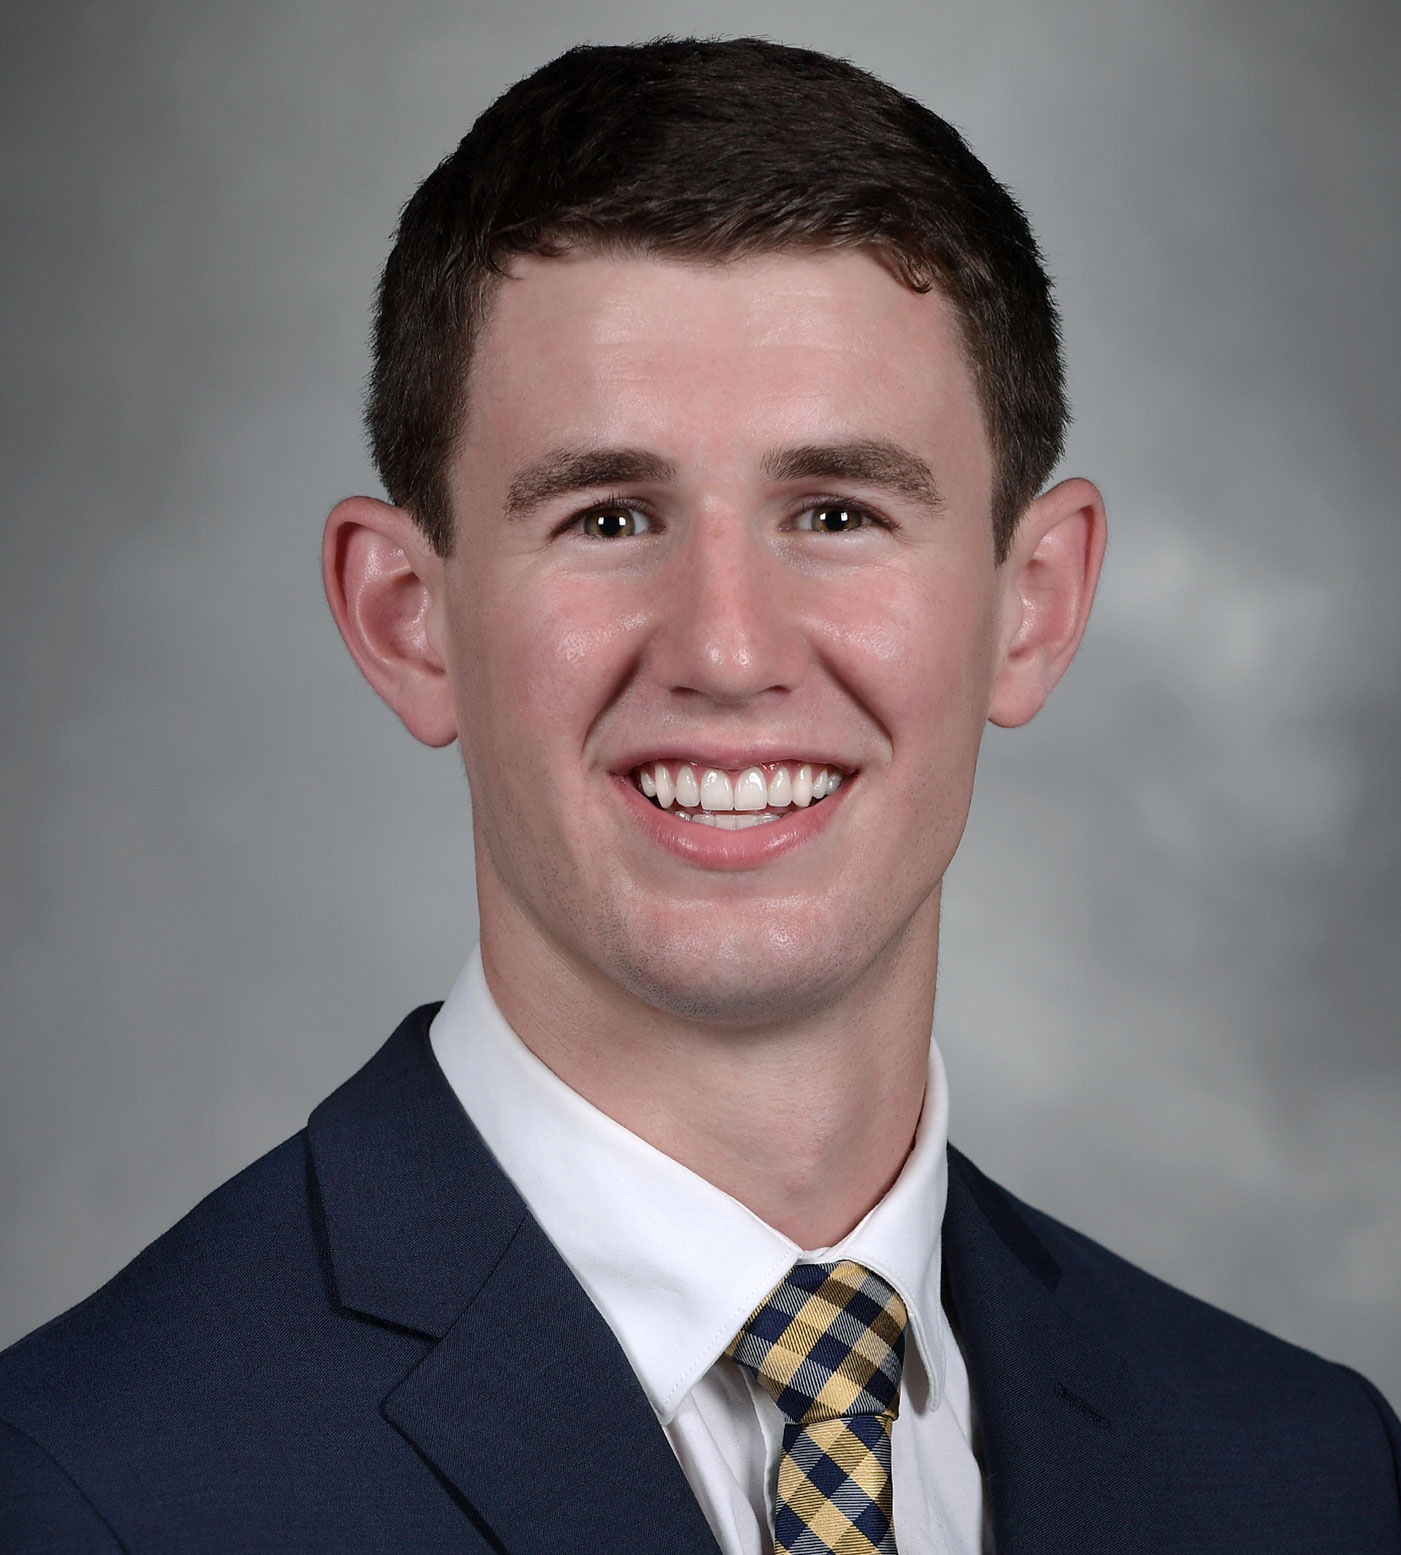 Gov. John Kasich has appointed Nick Kollar of Stow, Ohio, to a two-year term as a graduate student trustee of the Kent State University Board of Trustees.